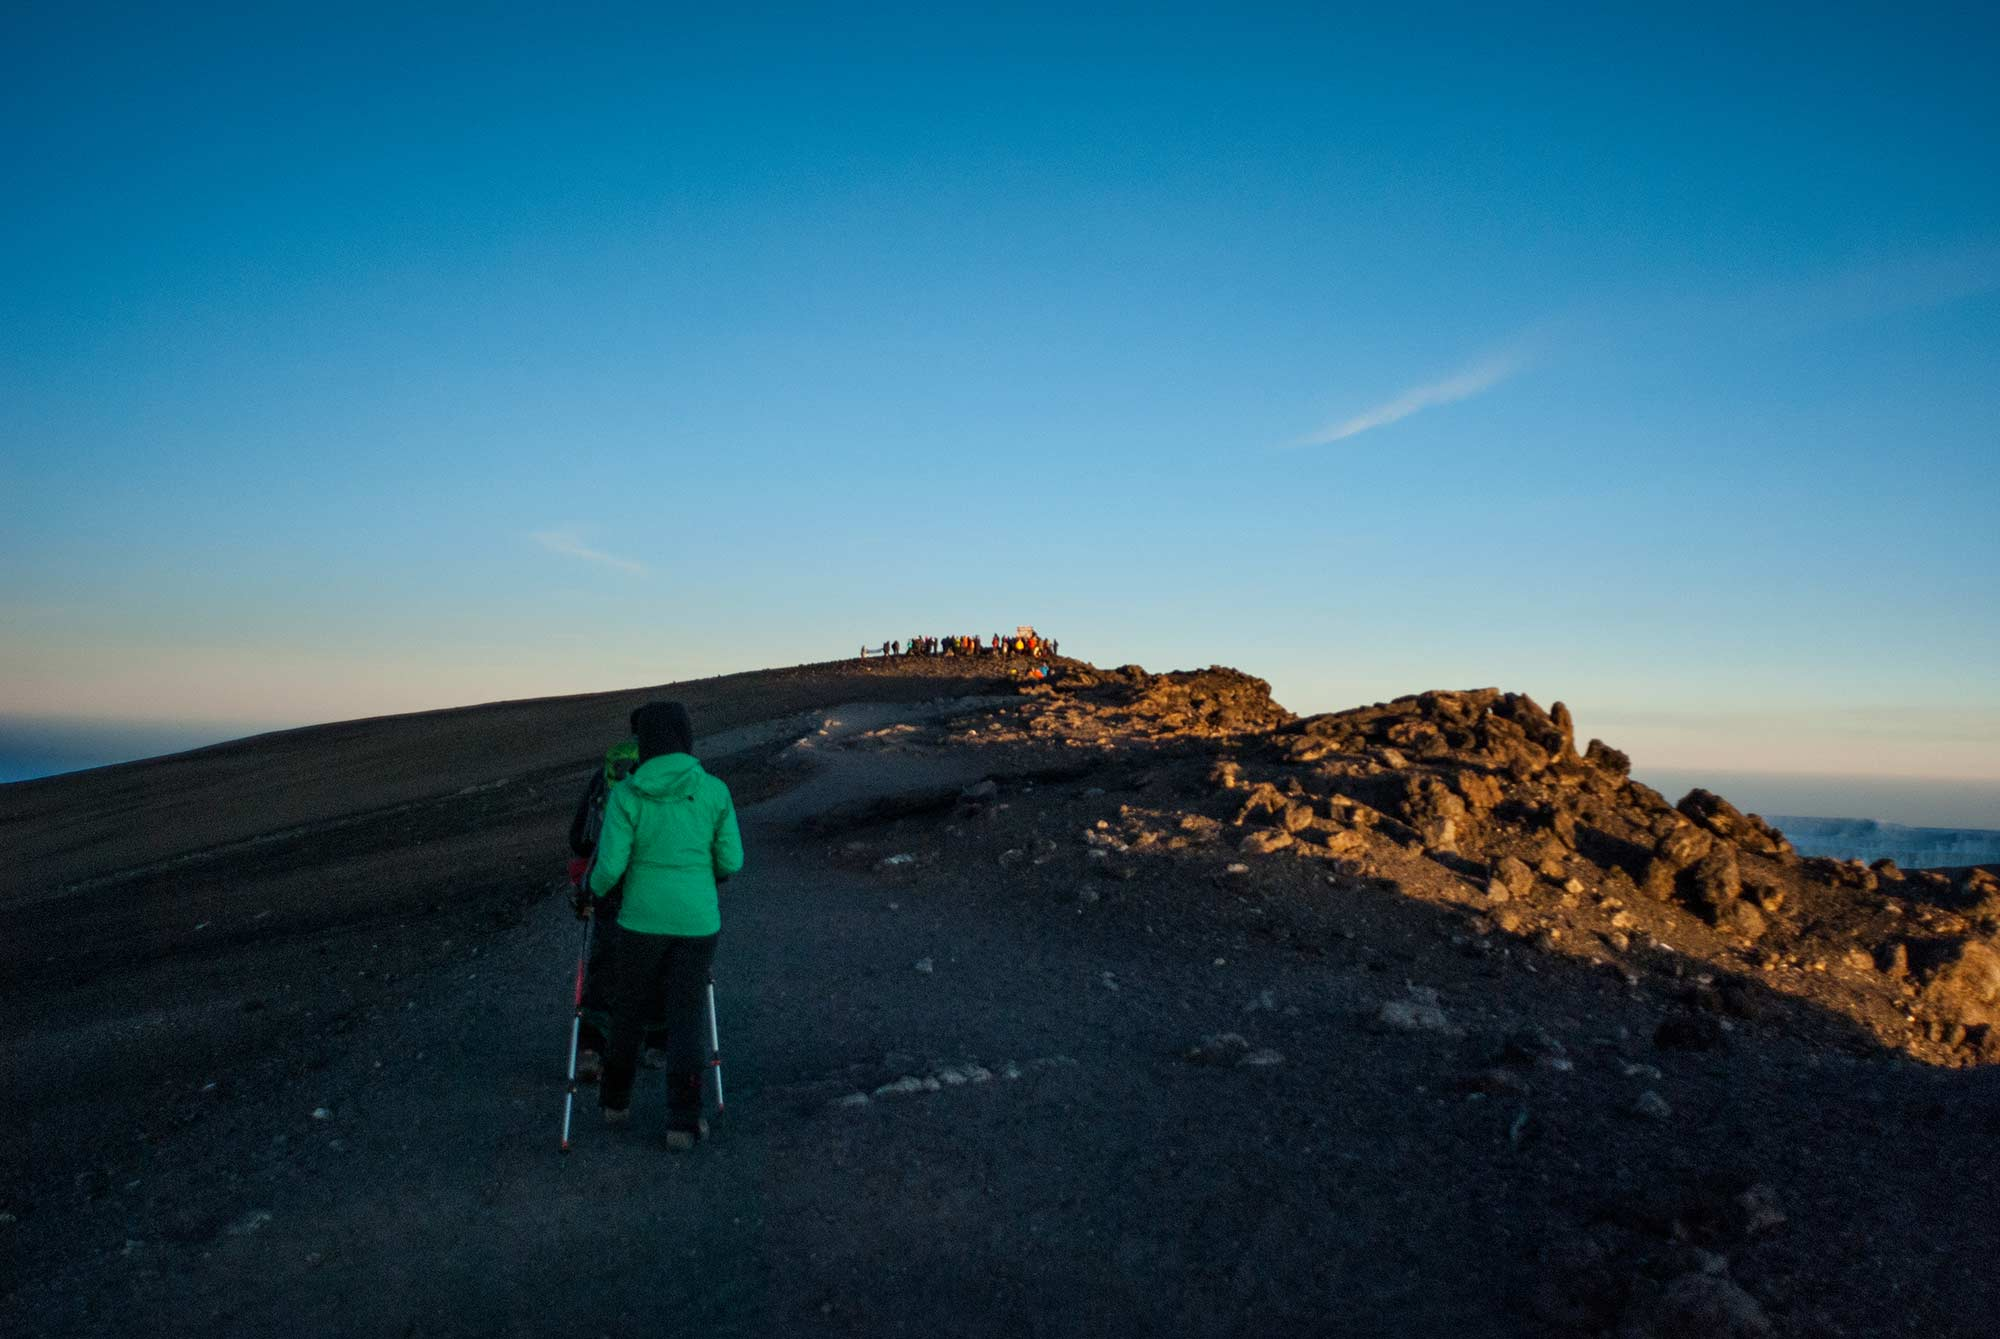 The summit of Kilimanjaro comes into view.